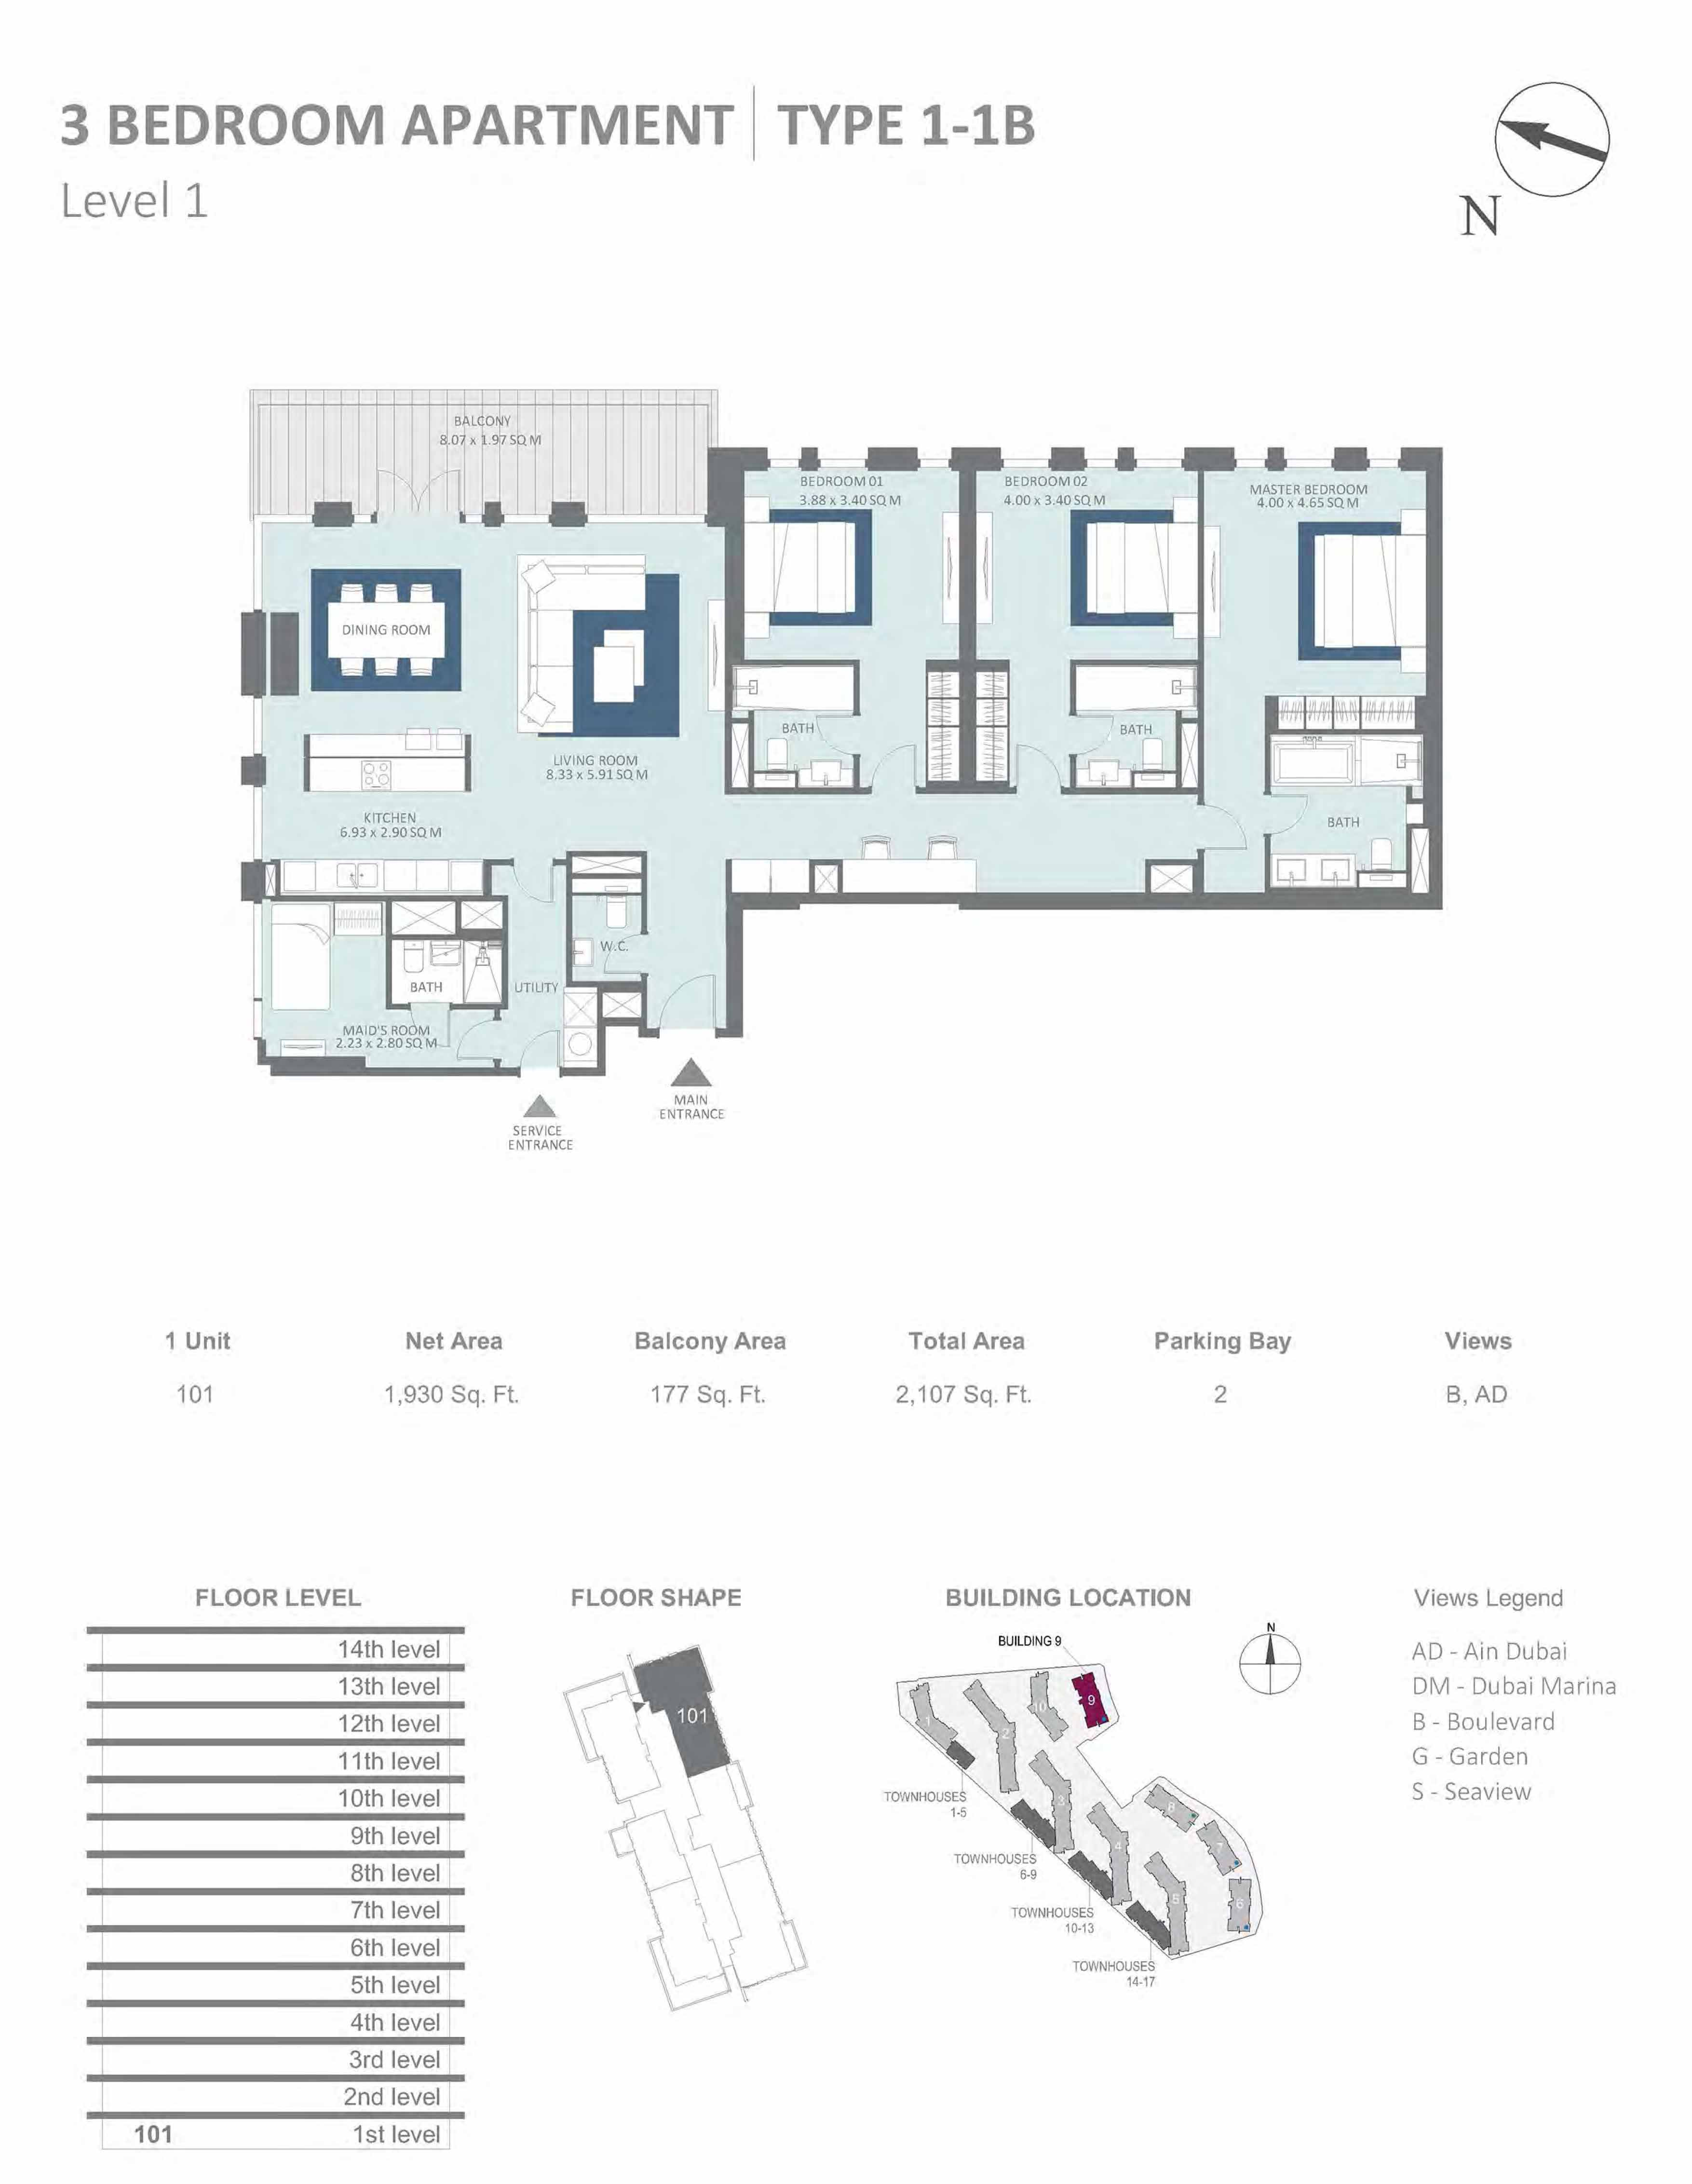 Building 9 - 3 Bedroom Type 1-1B, Level 1 Size 2107  sq. ft.